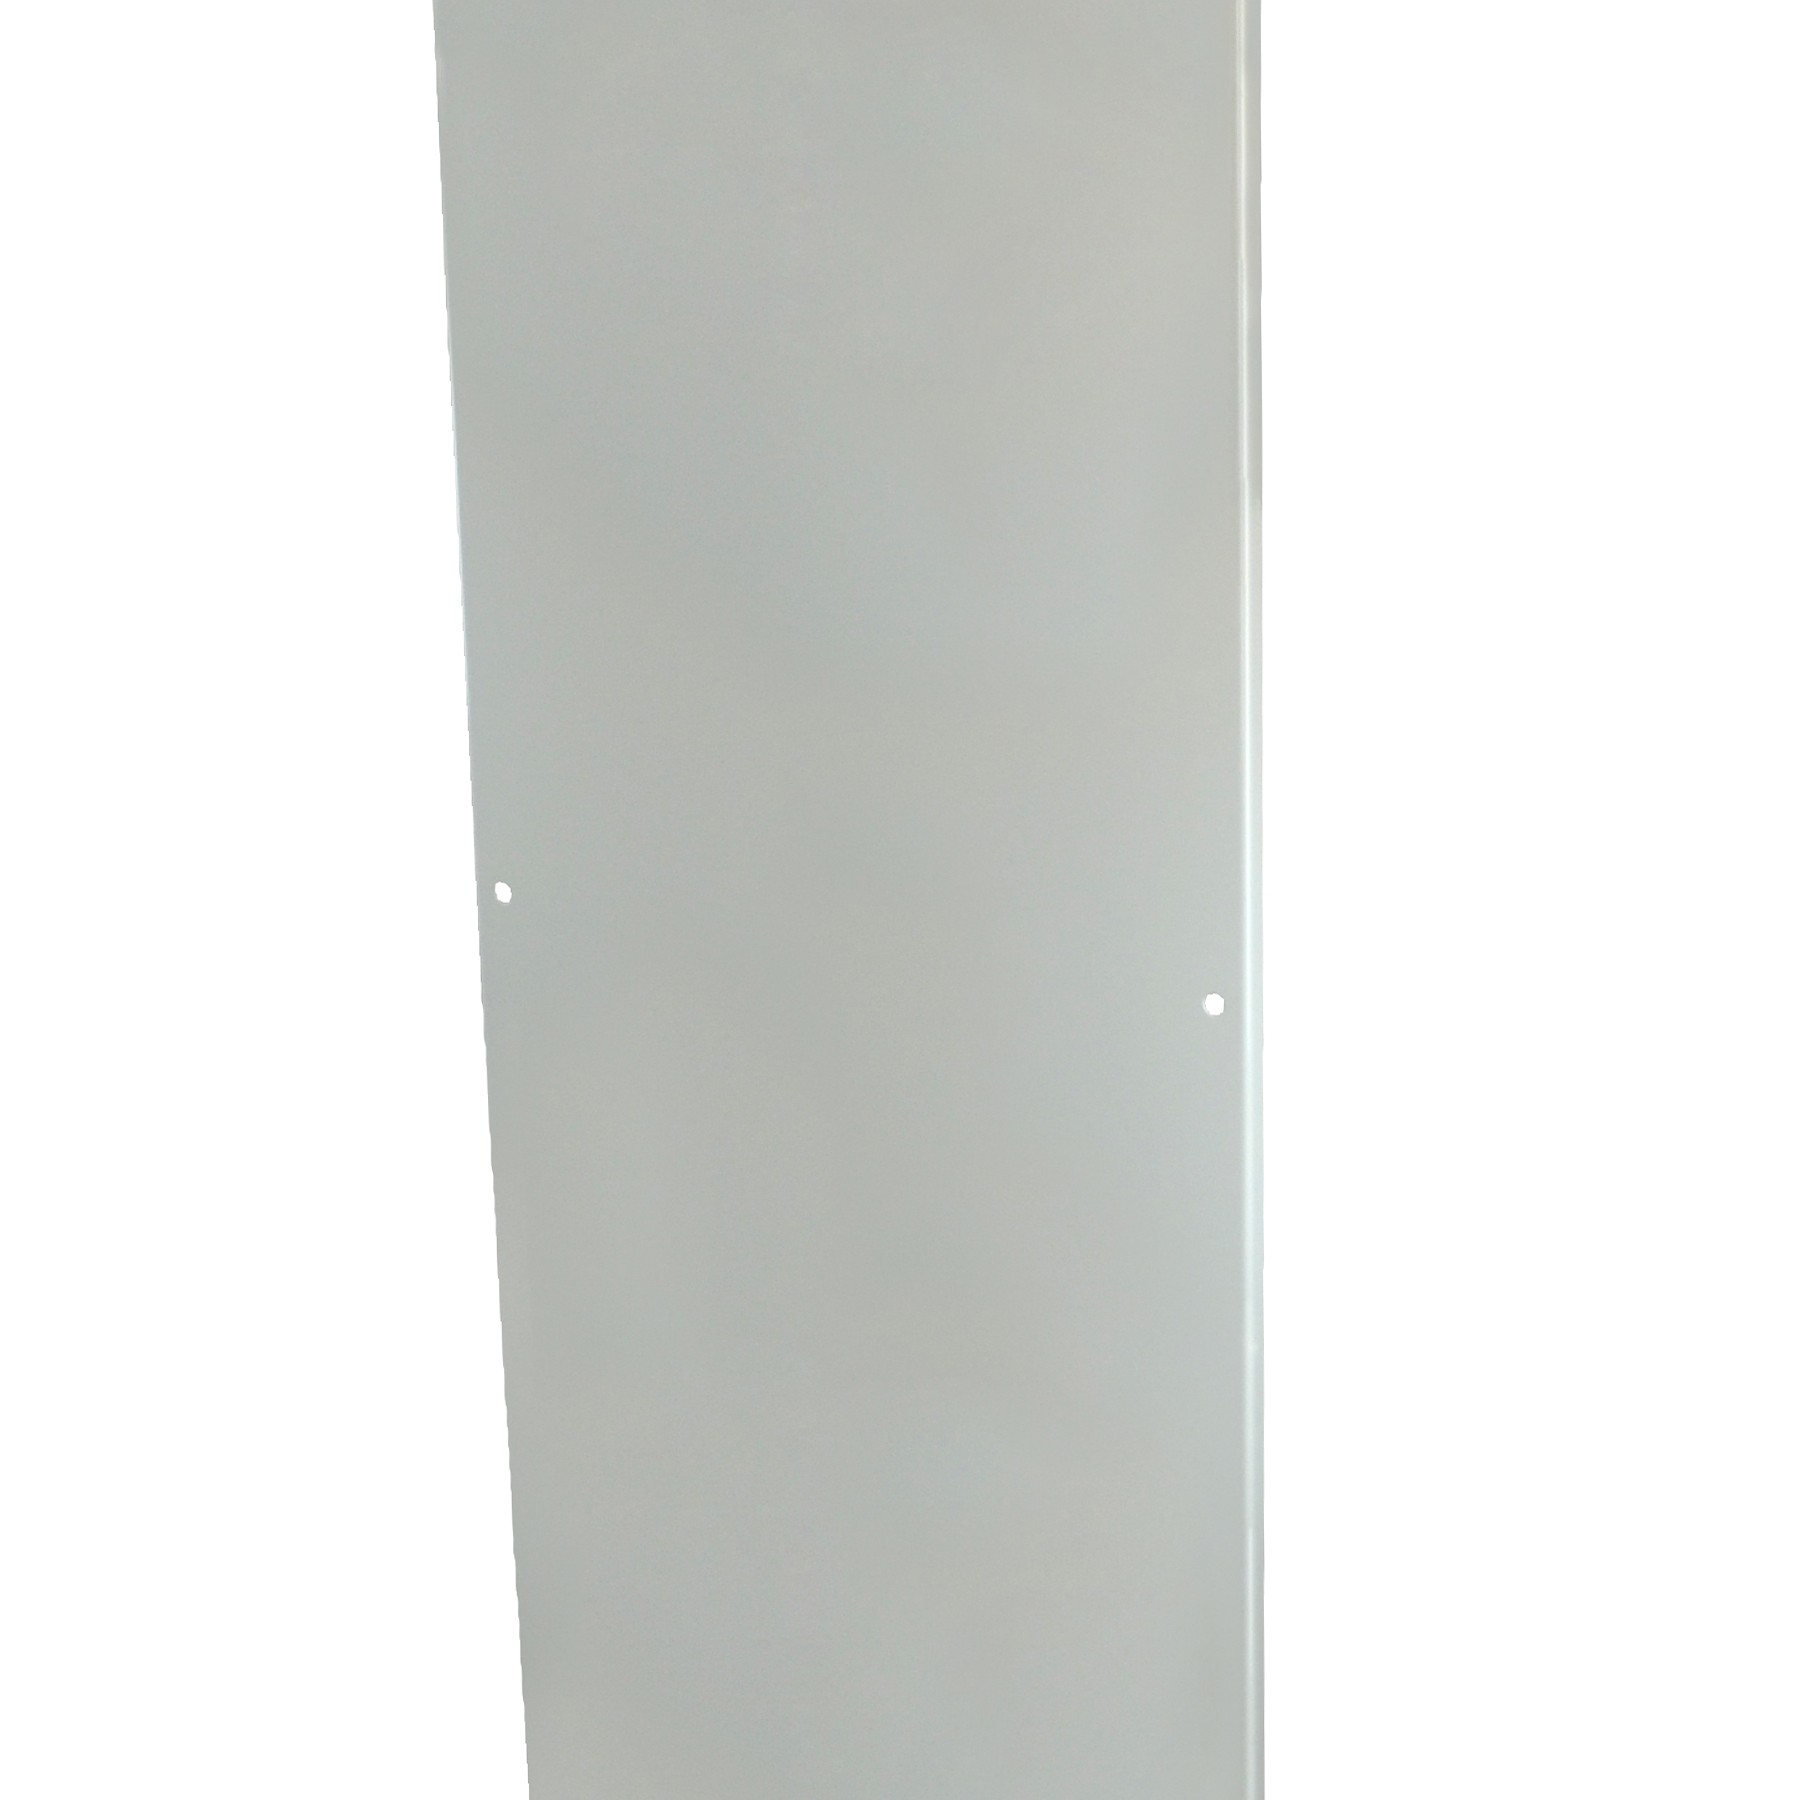 "Carbon Steel Back Panel for 72"" x 25"" Enclosures"